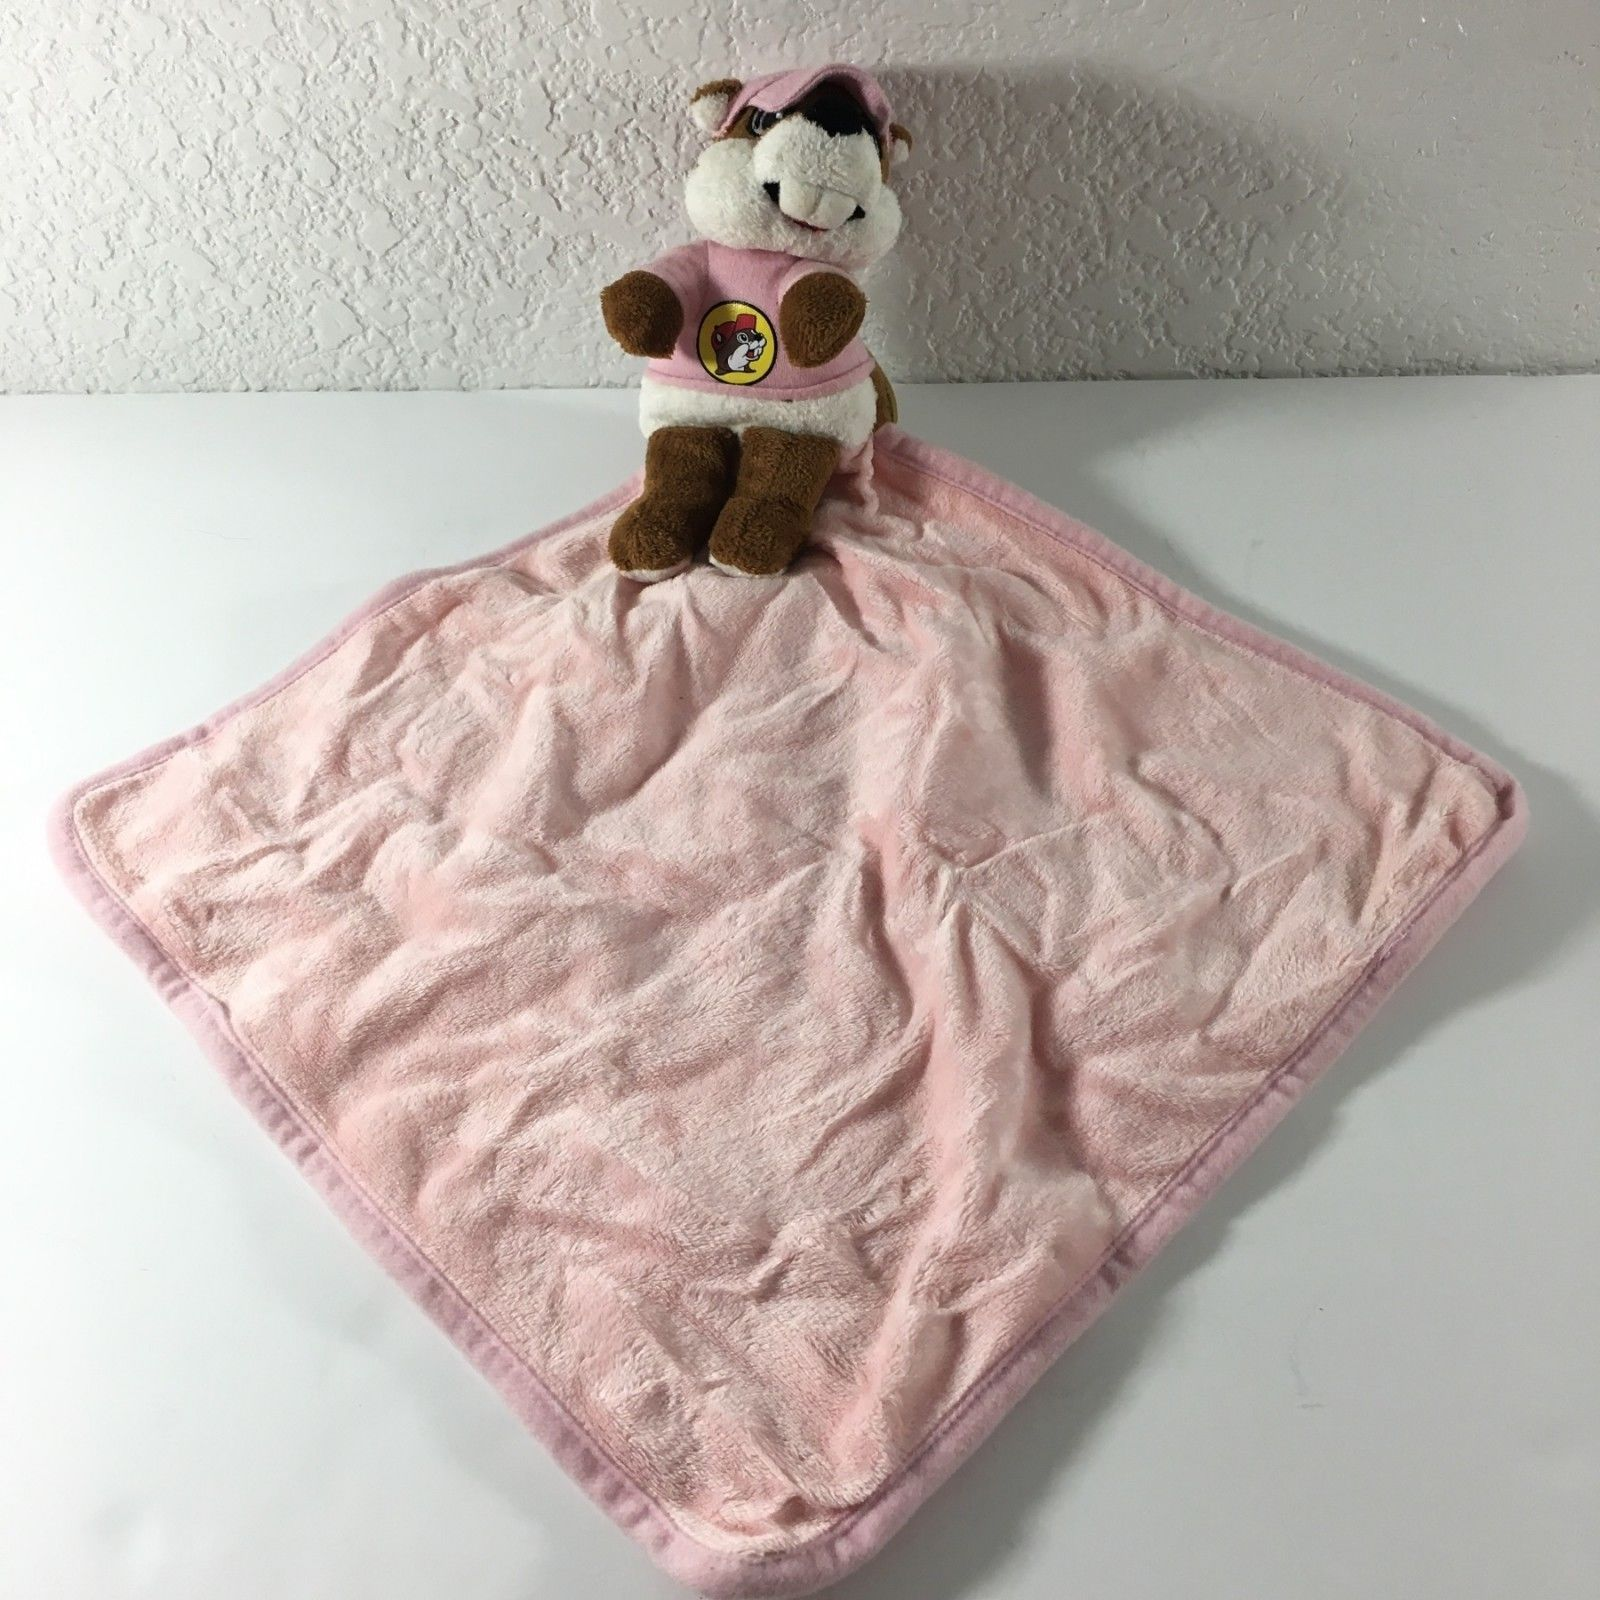 d523e9ca4 Jaag Buc-ees Lovey Pink Chipmunk Security and 50 similar items